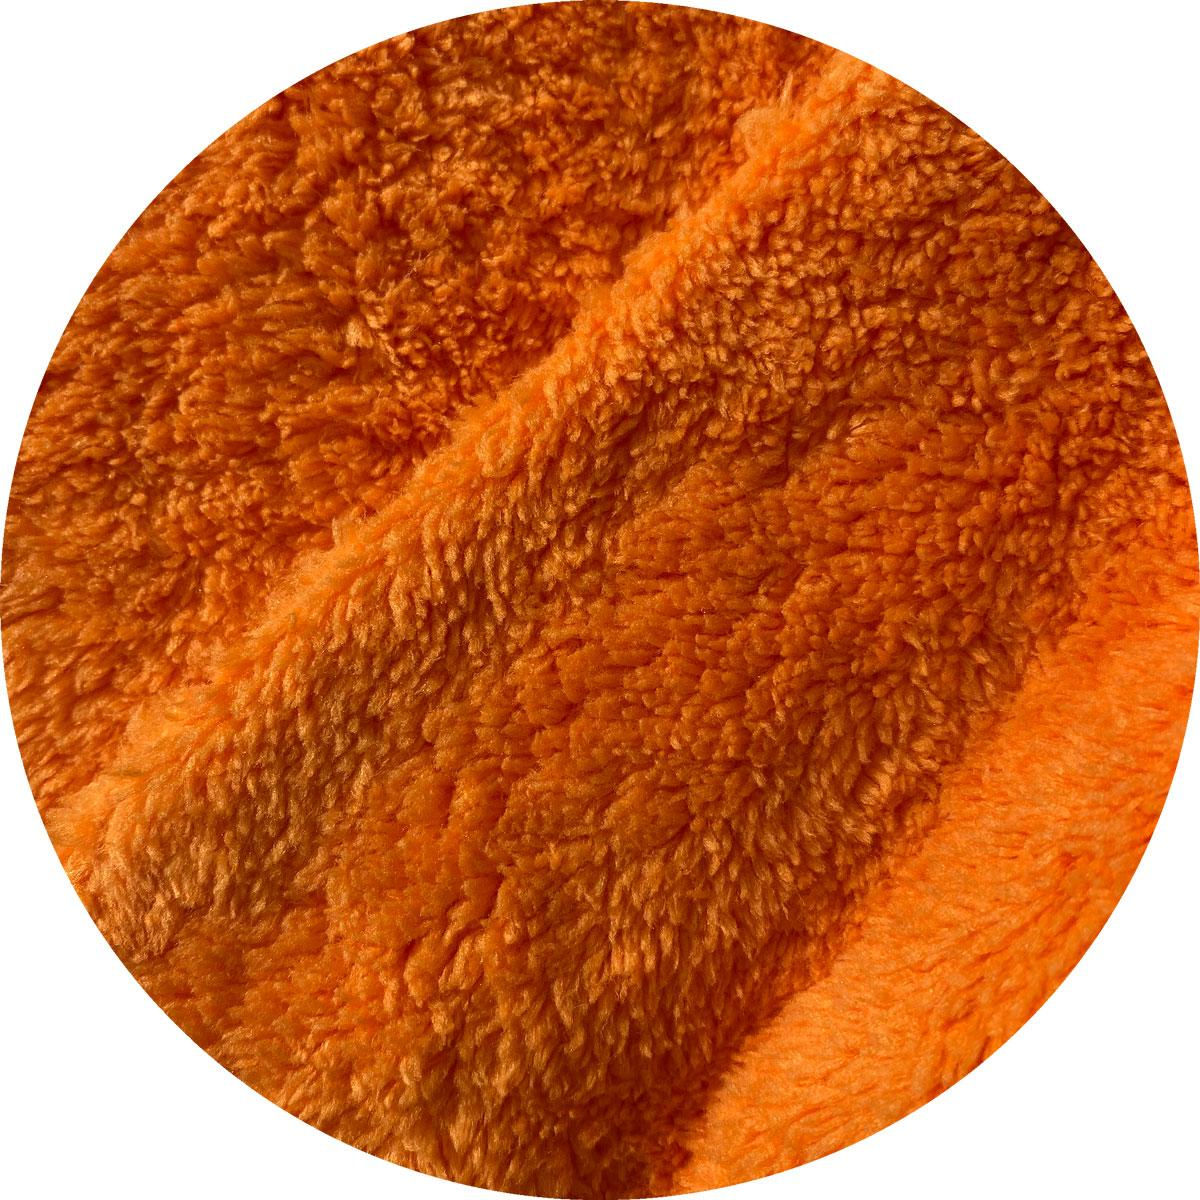 orange-365gsm-fabric-up-close.jpg